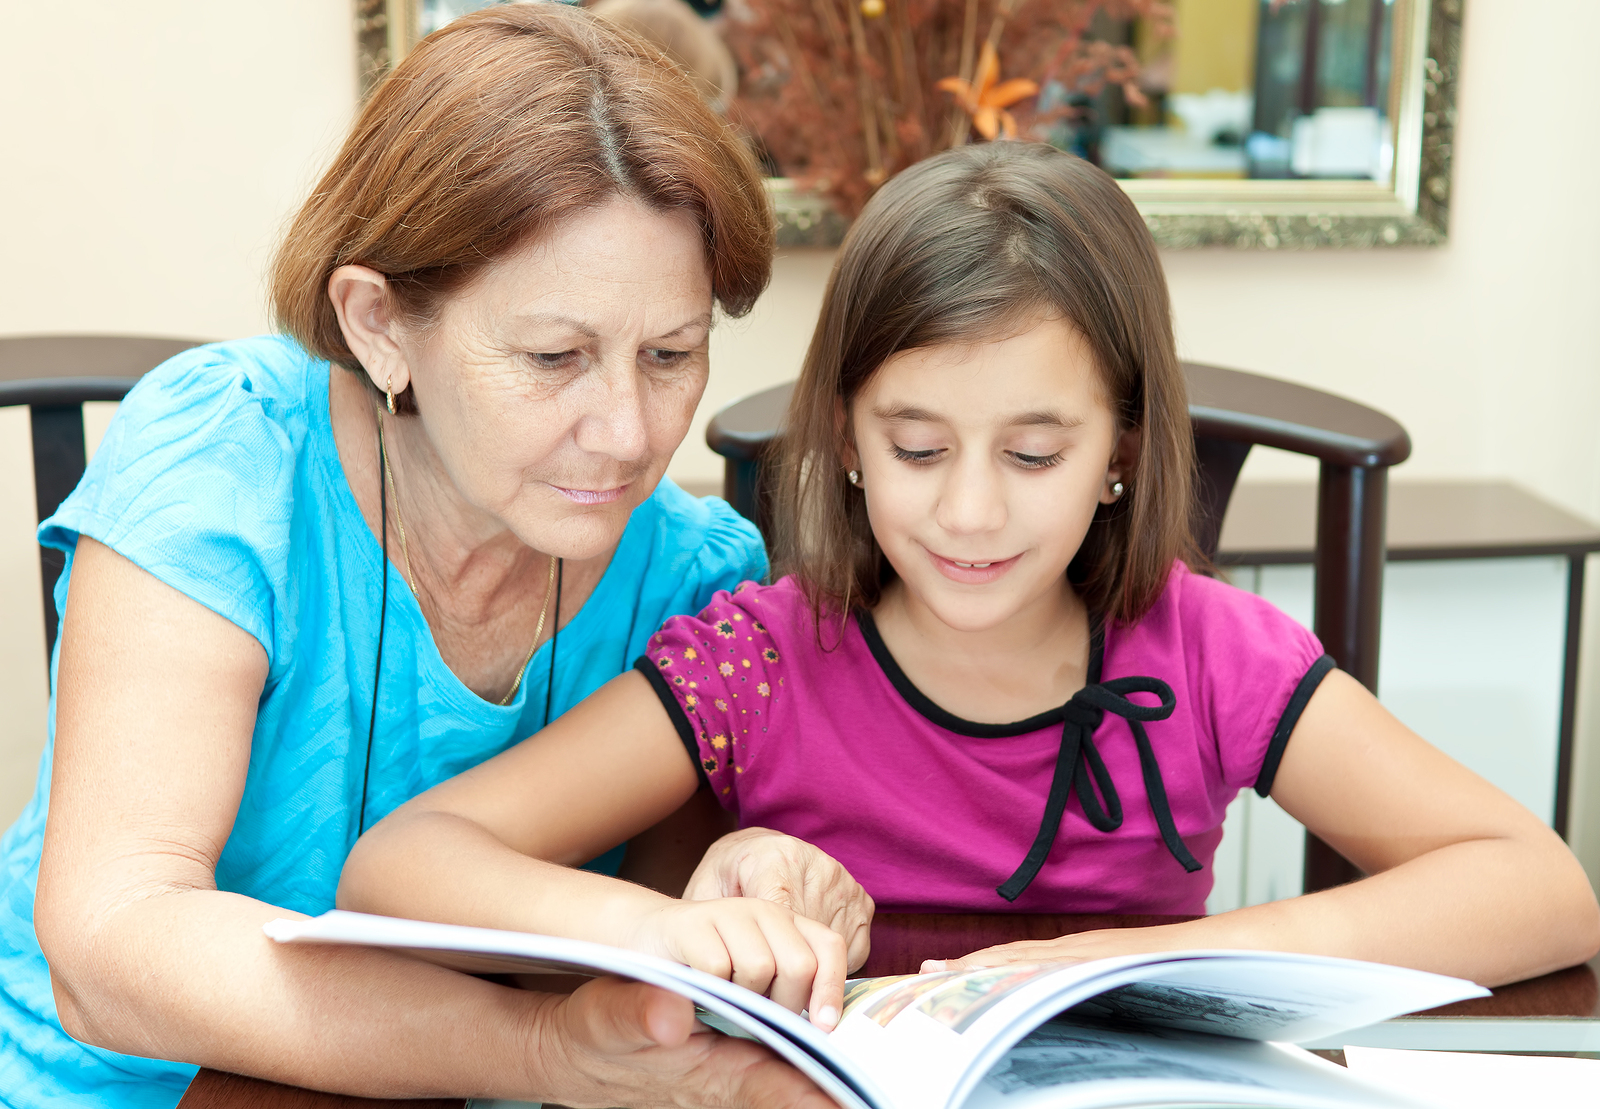 You should look for signs of reading readiness that develop over time.